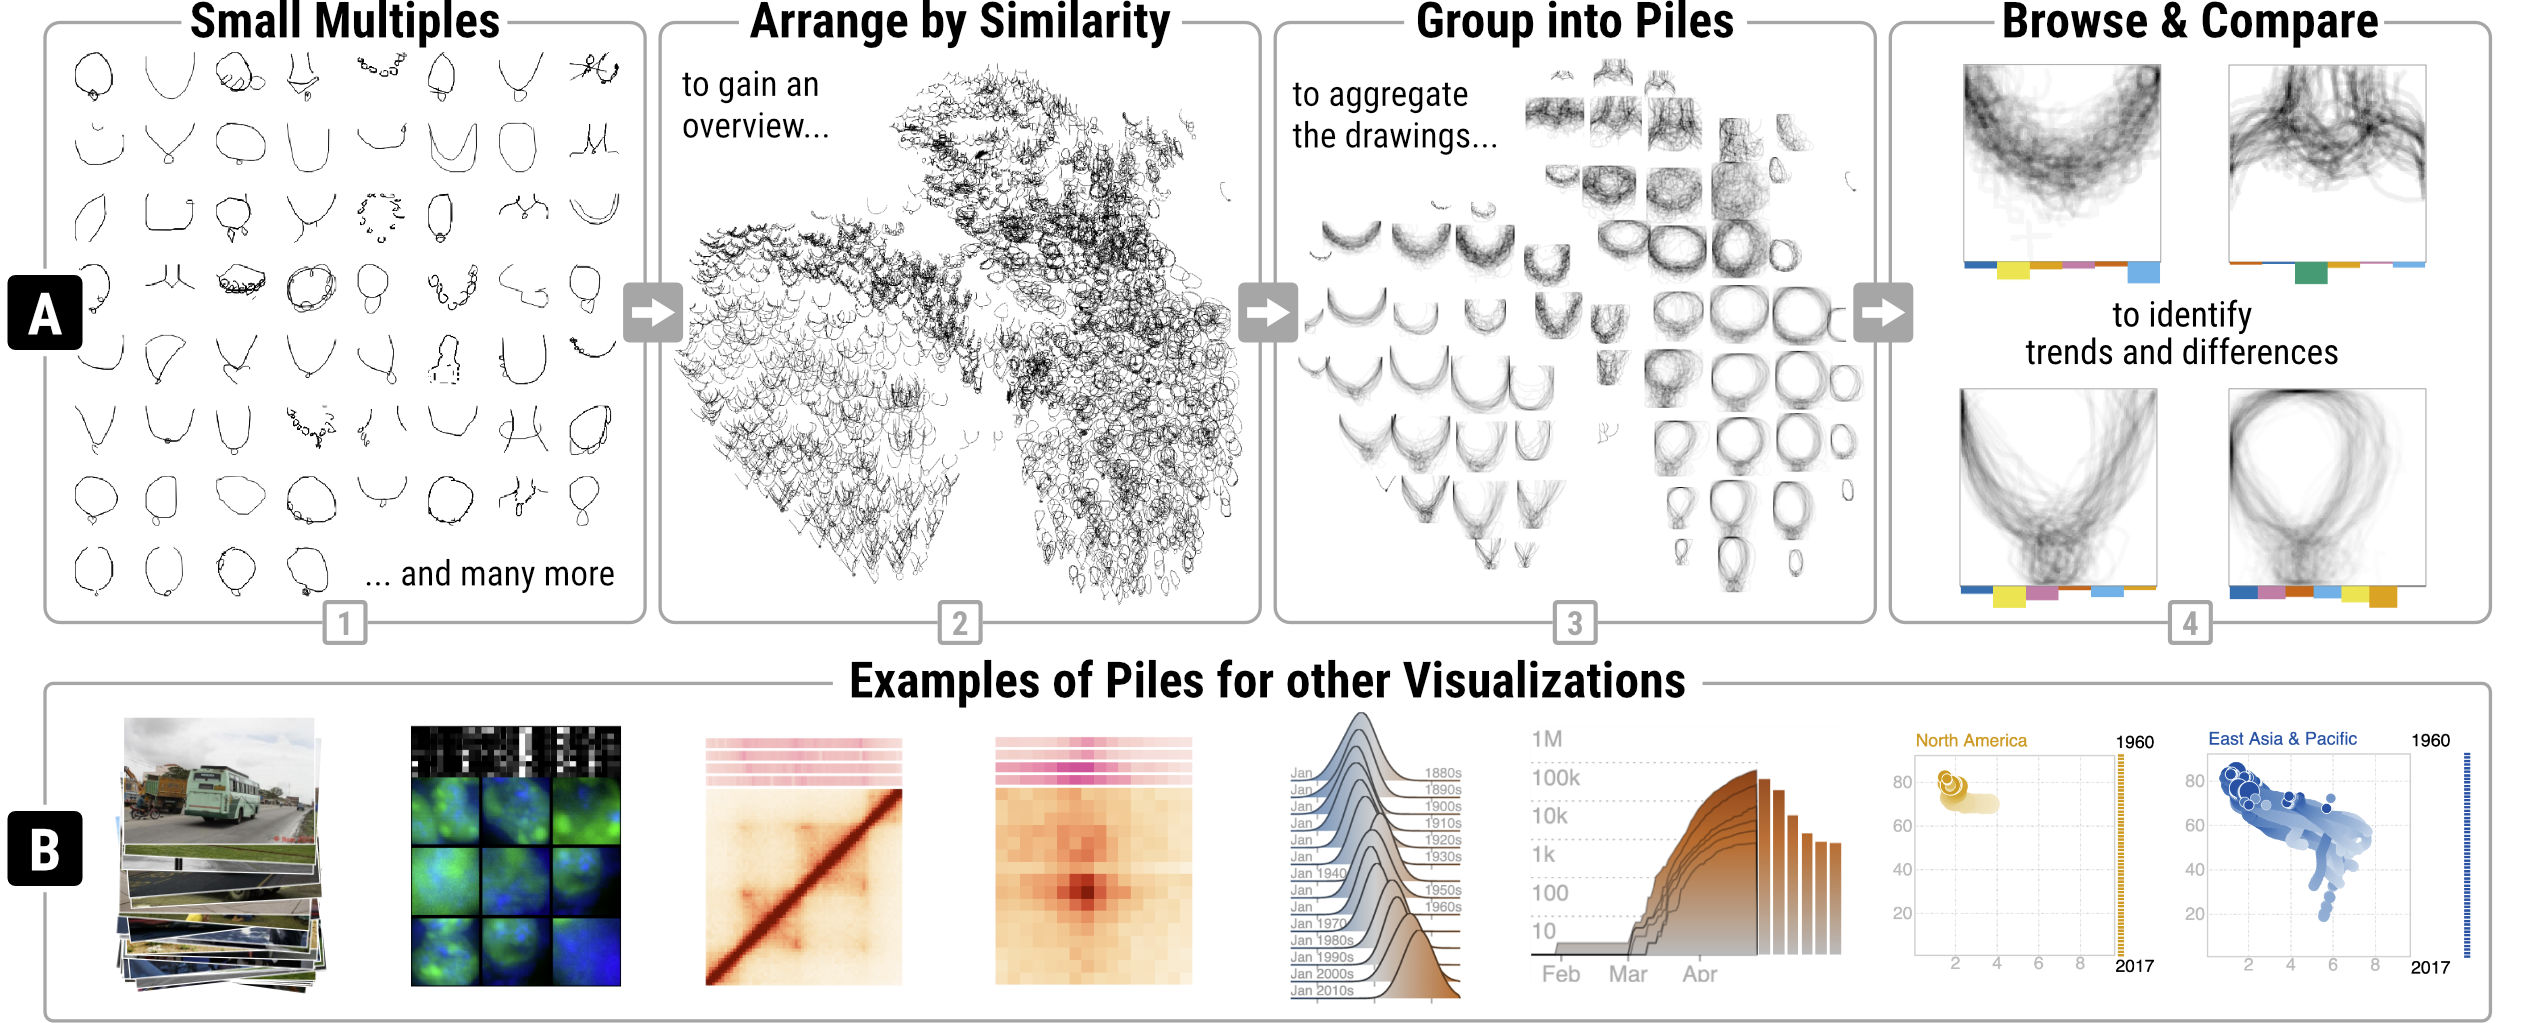 A Generic Framework and Library for Exploration of Small Multiples Through Interactive Piling